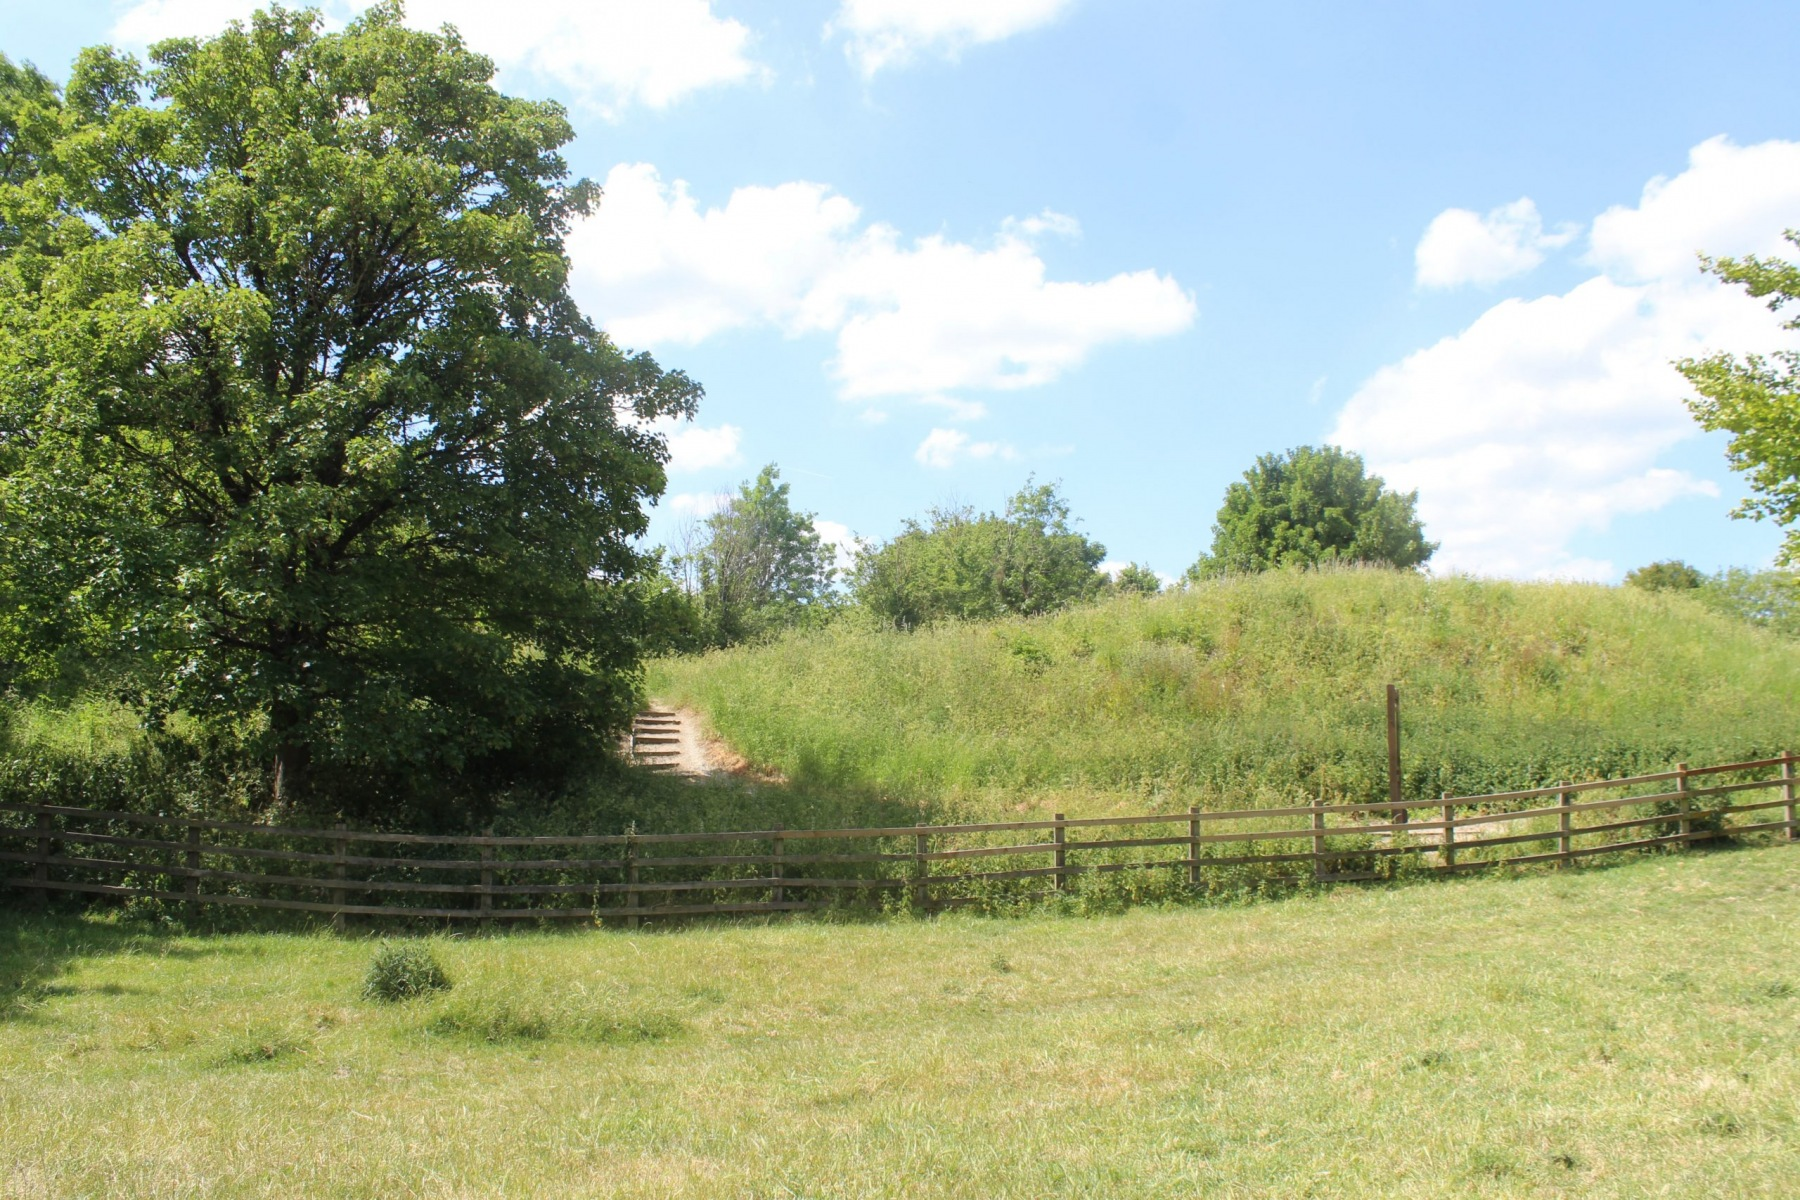 Motte and Bailey at Pirton